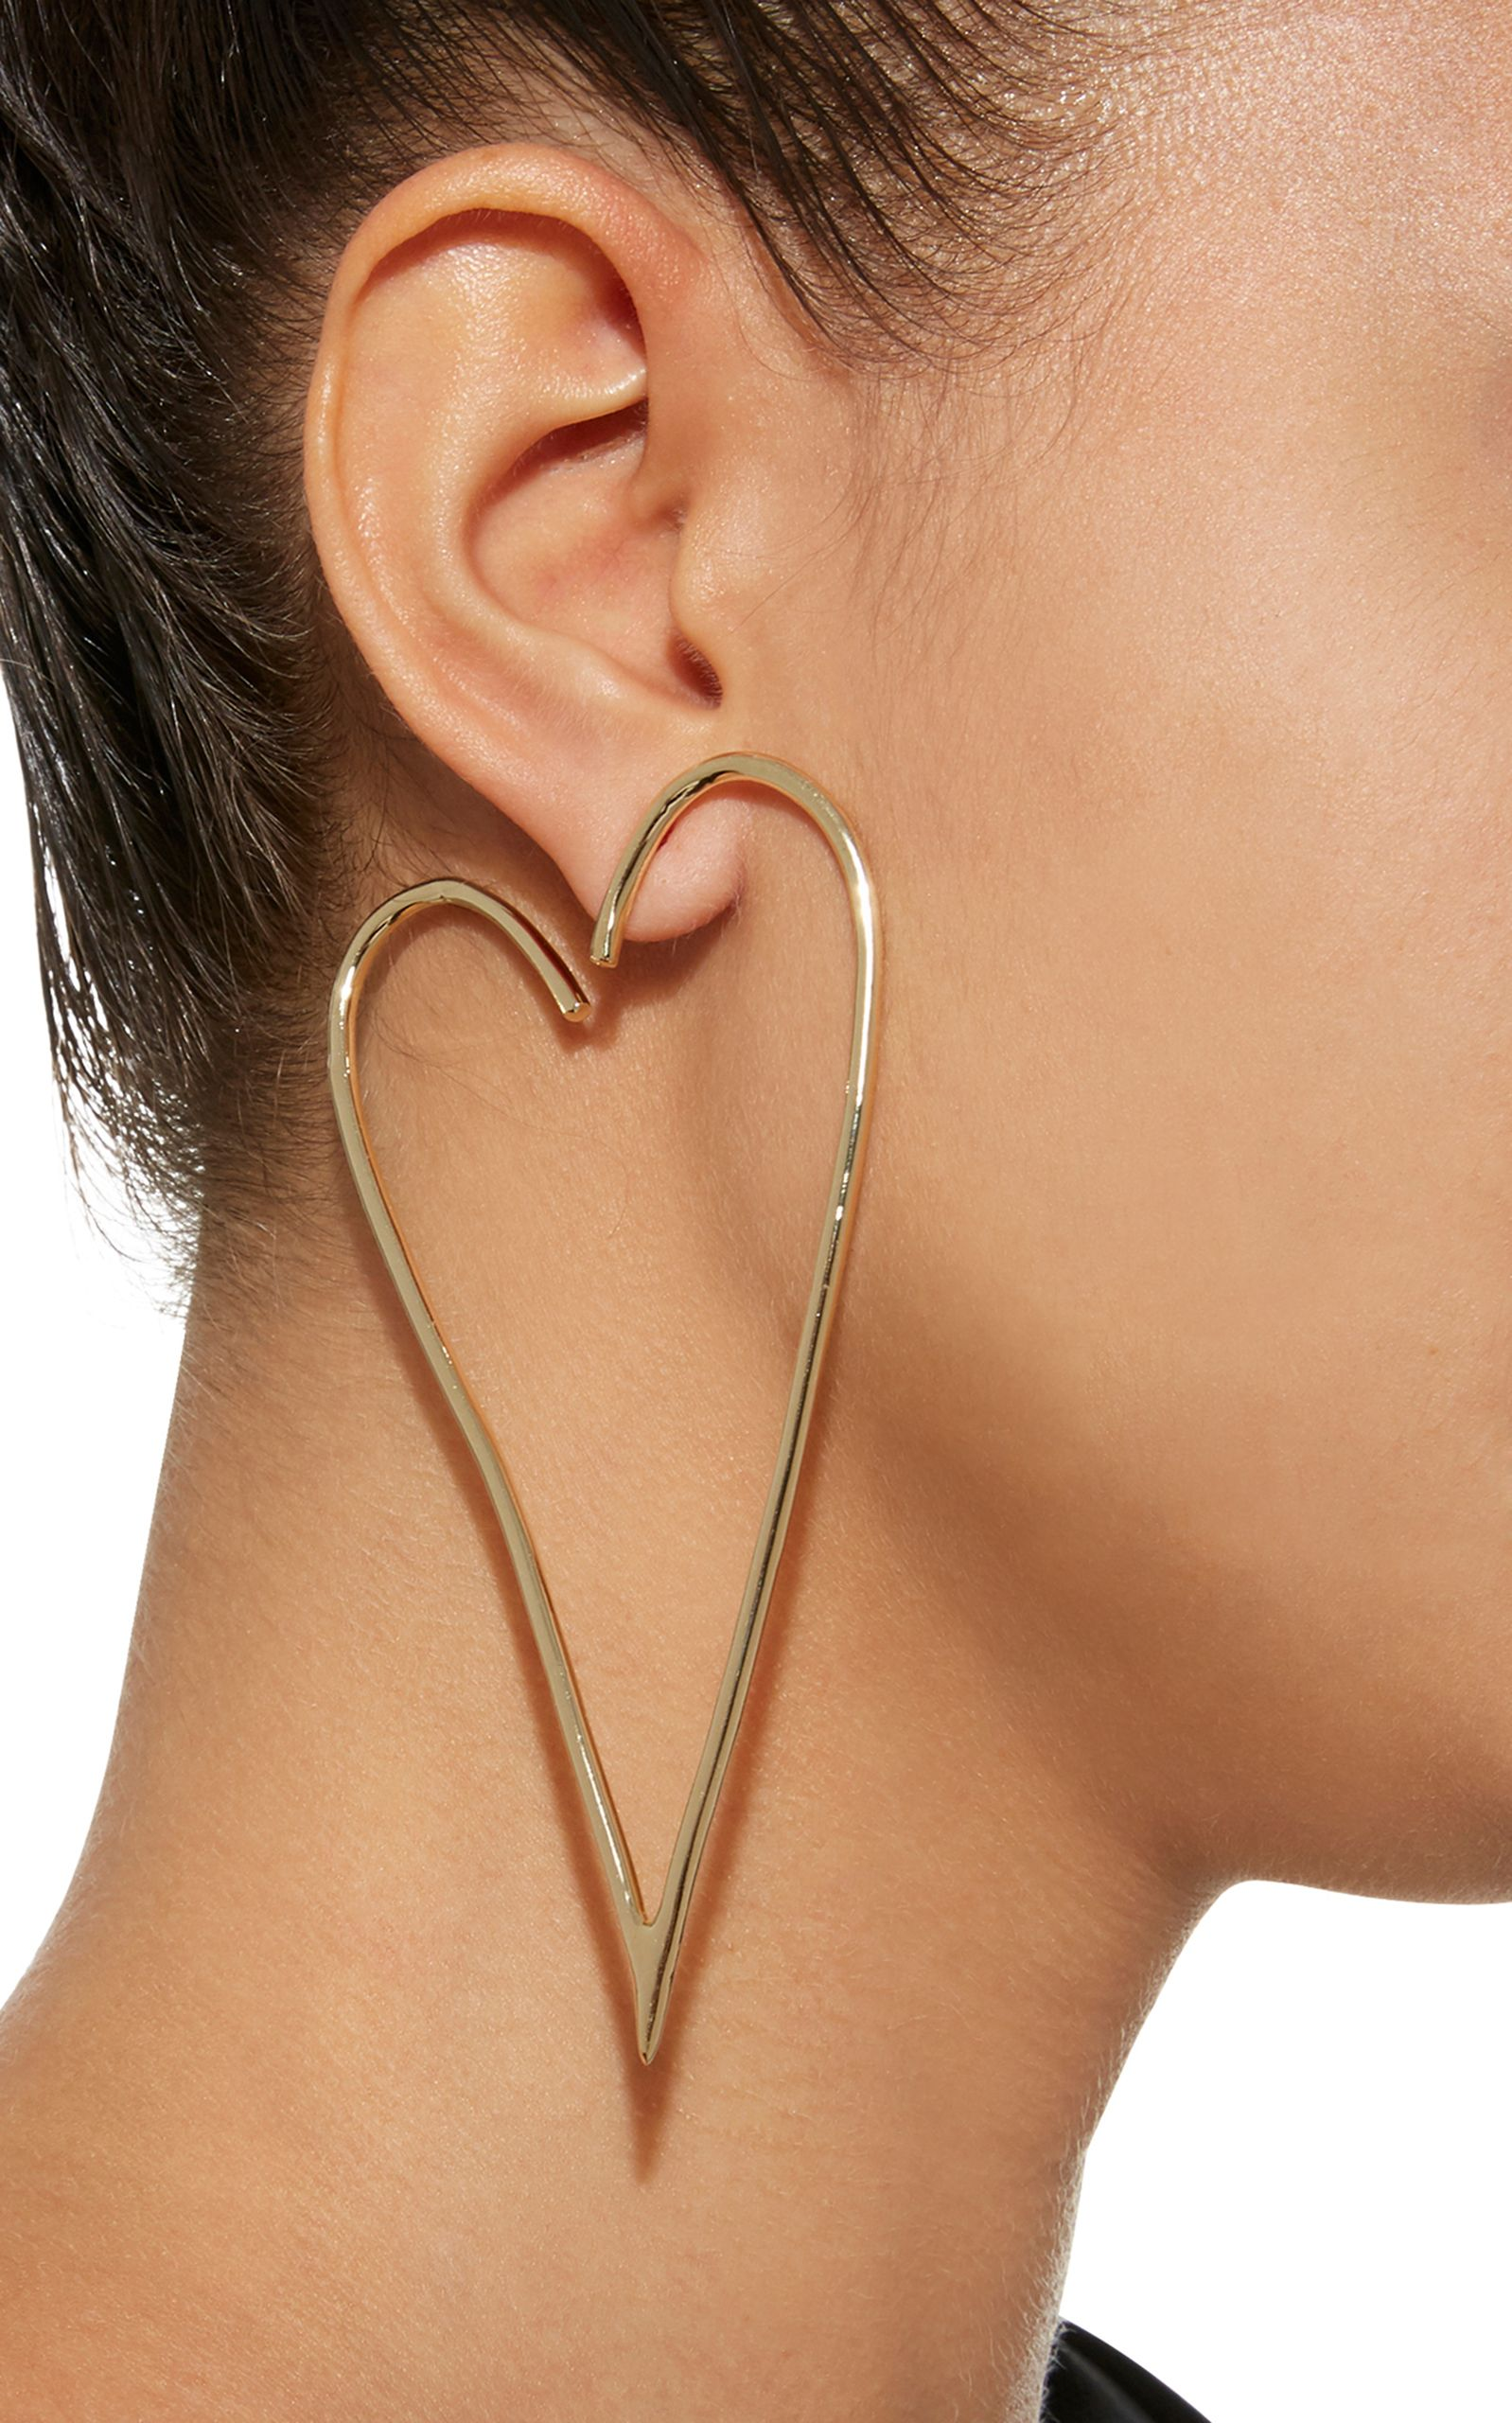 on leaf single pin wendes earring for moda charlotte preorder by tropic earrings operandi